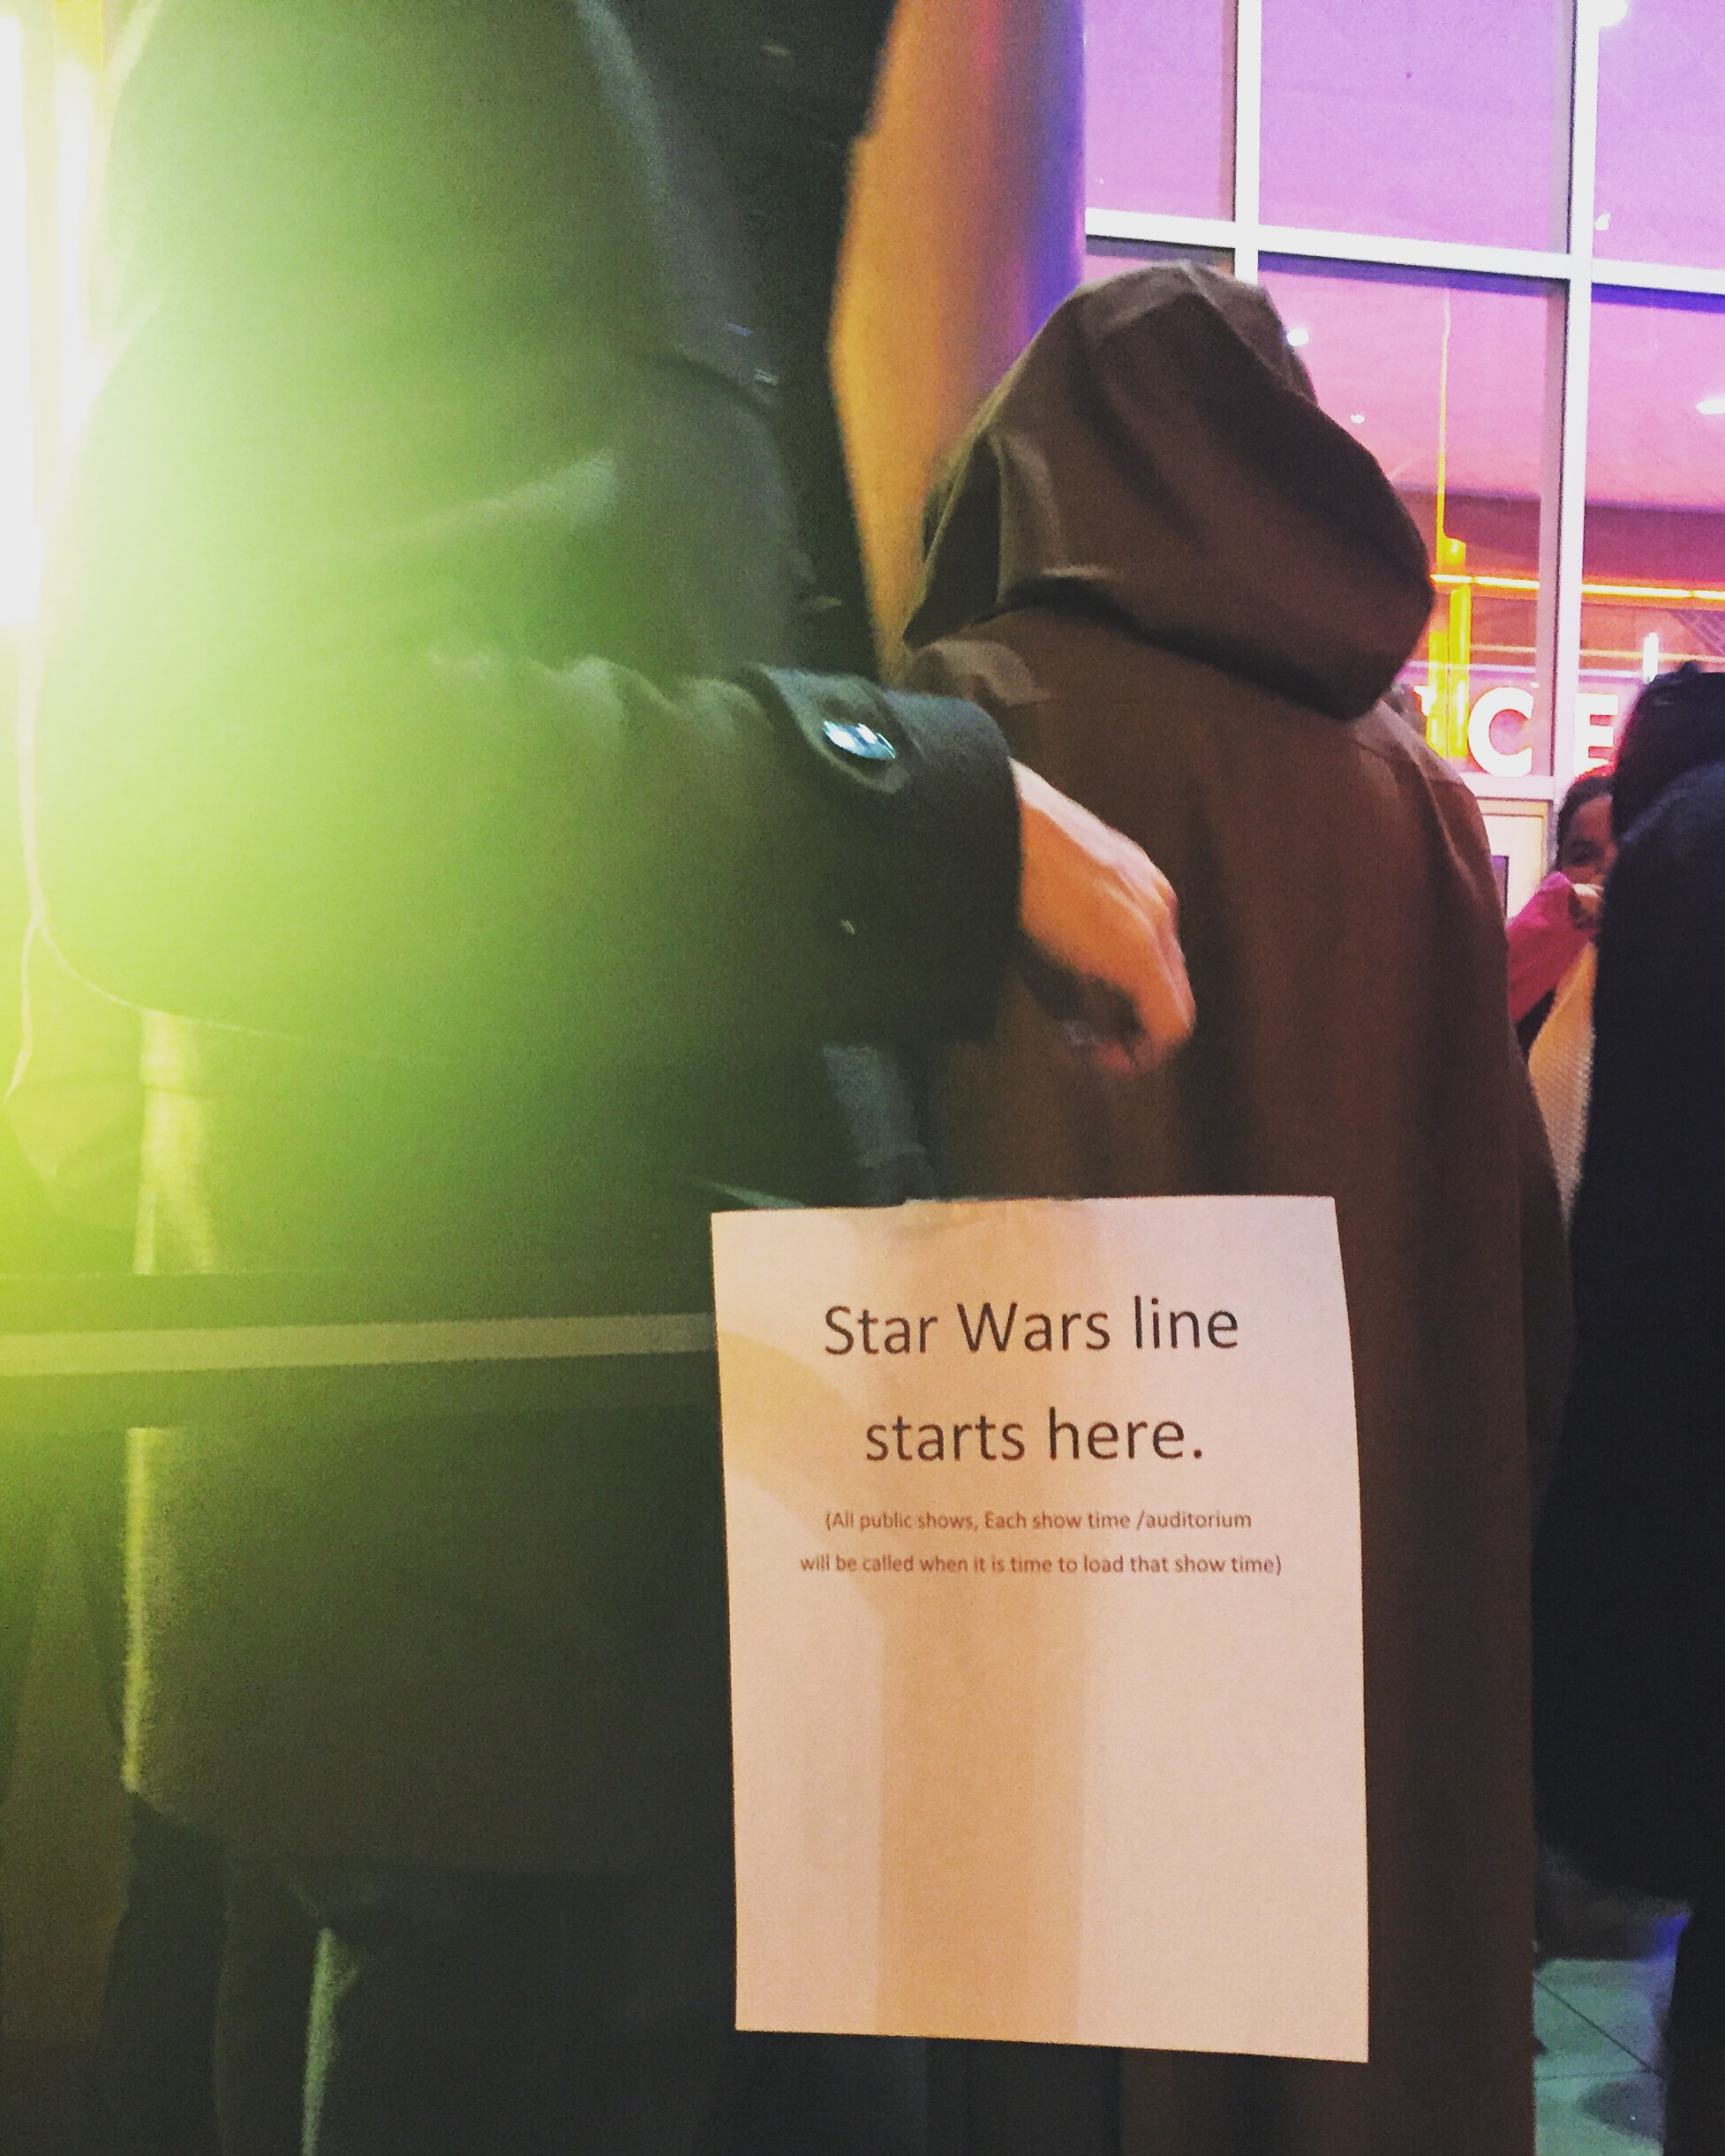 For a Jedi it is time to line up as well - Opry Mills Regal Cinema on opening night for  The Last Jedi